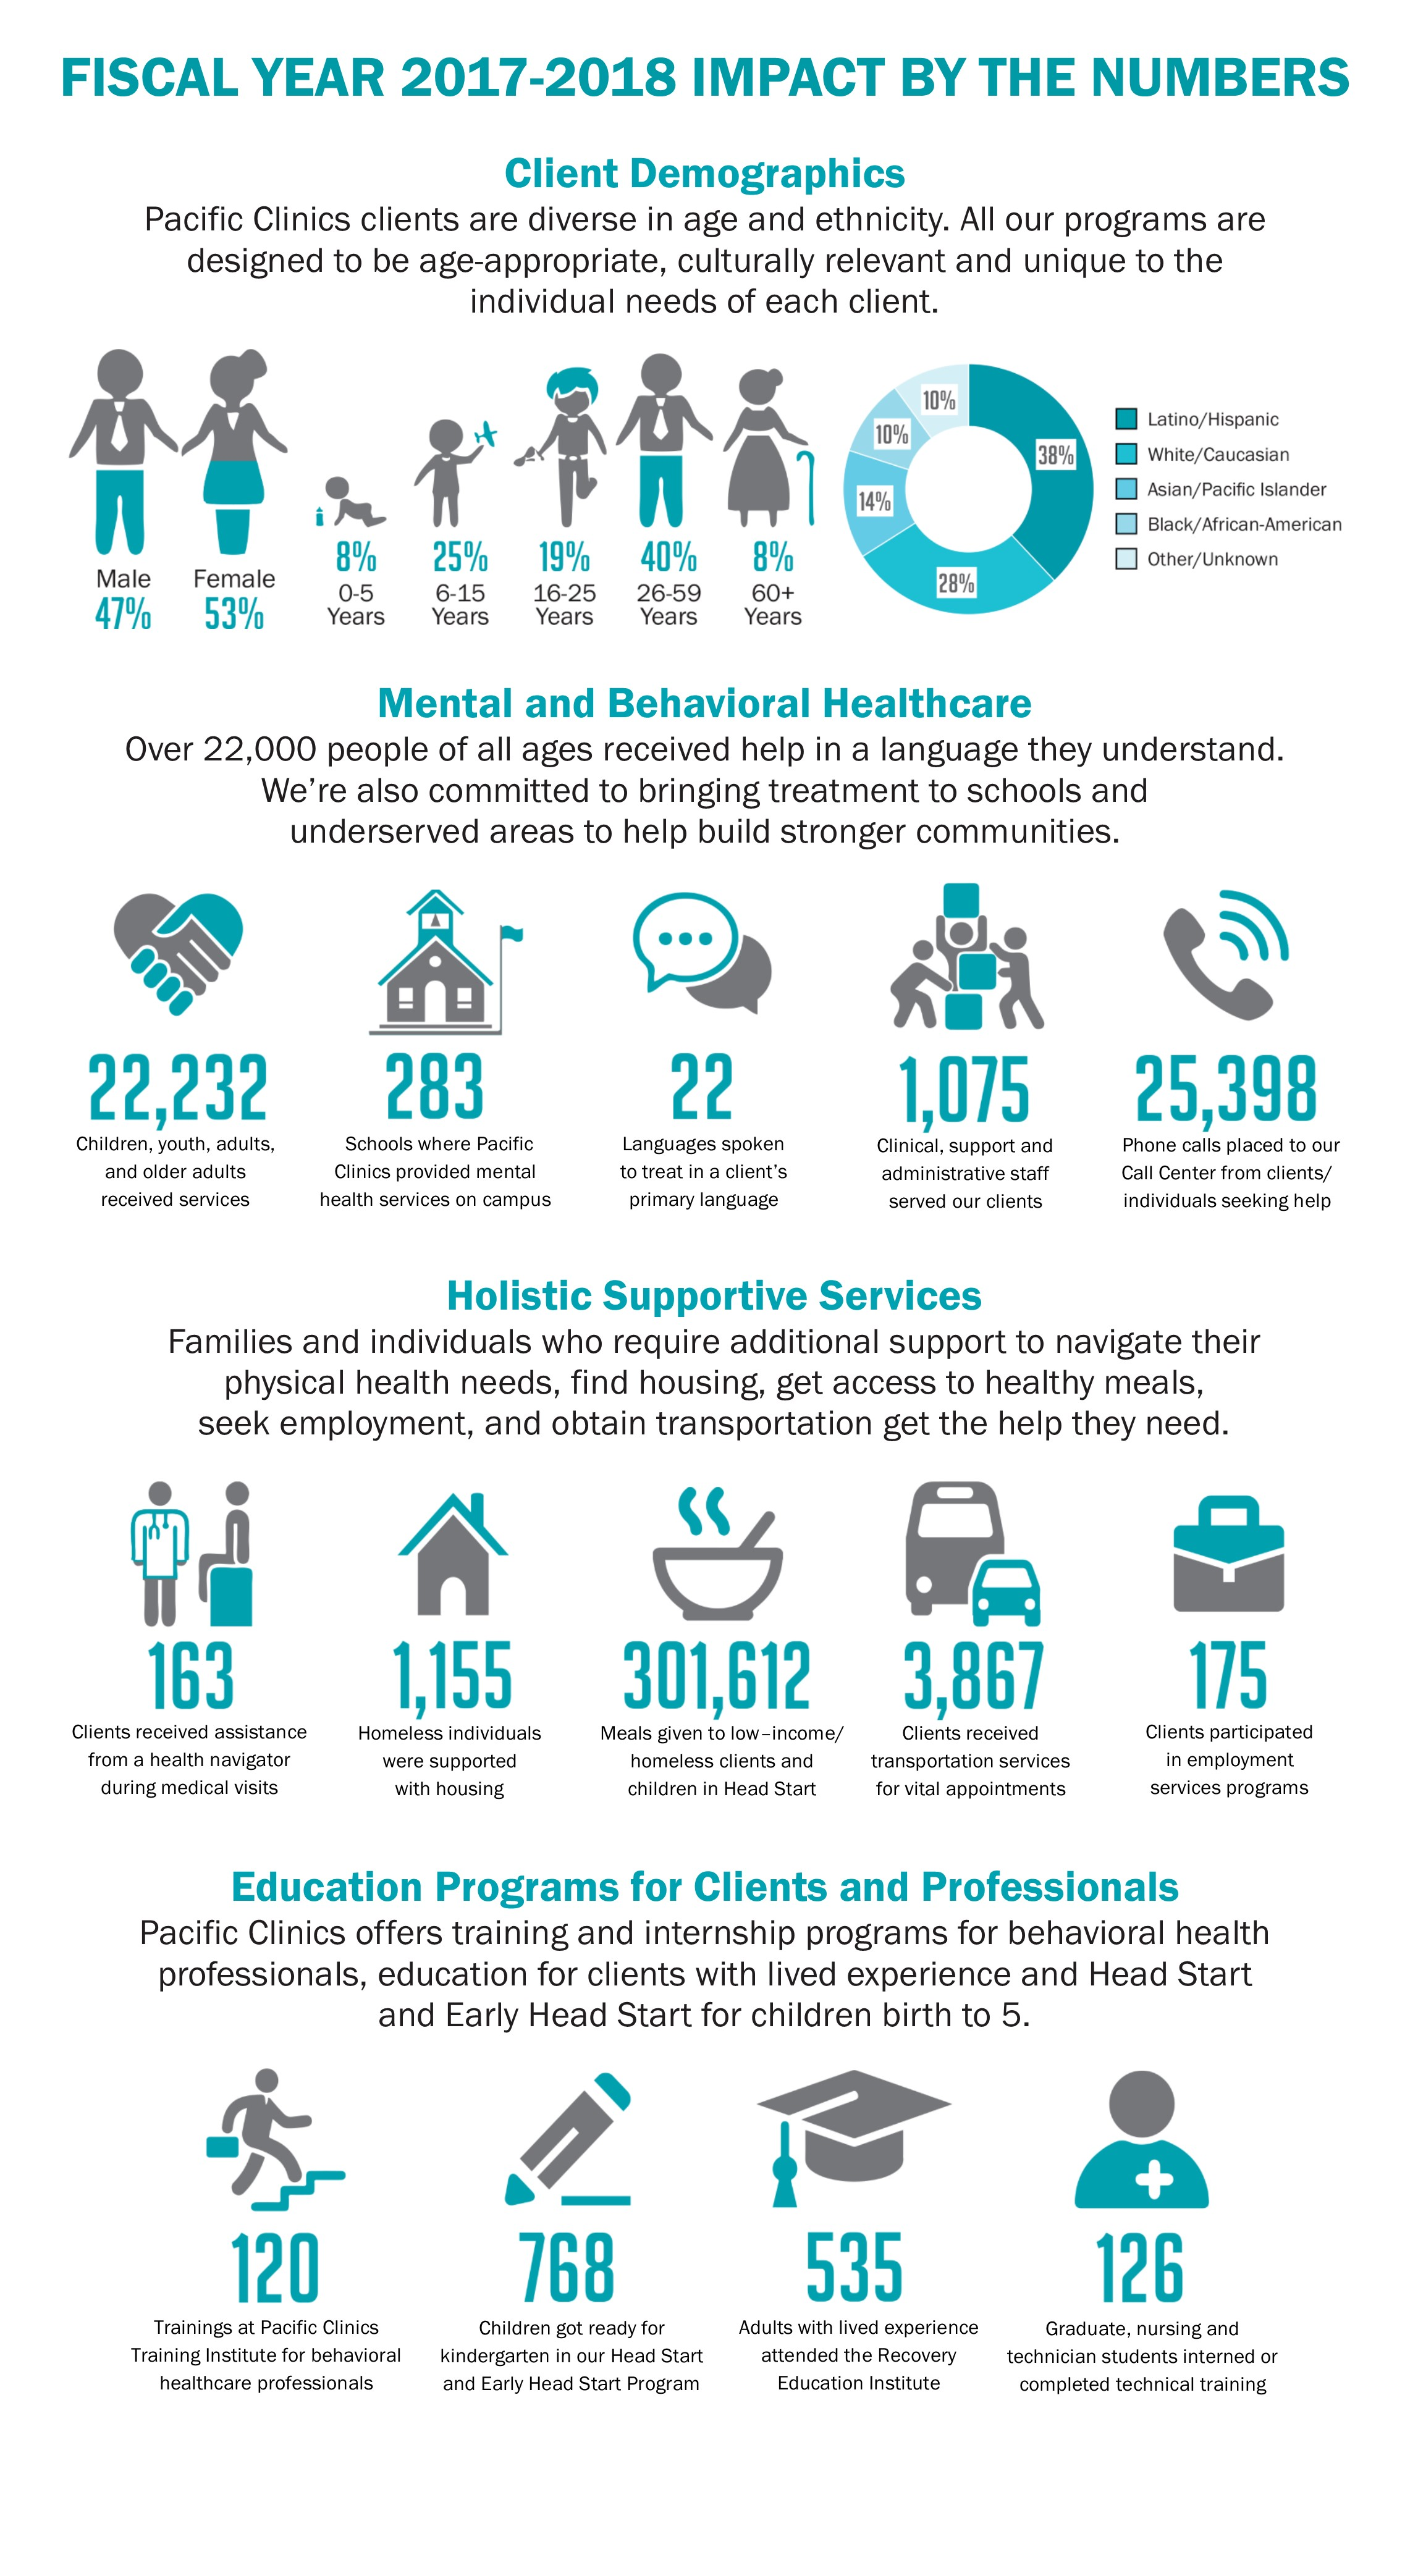 Over 22,000 children, youth, adults, and older adults received services in 2017-18.